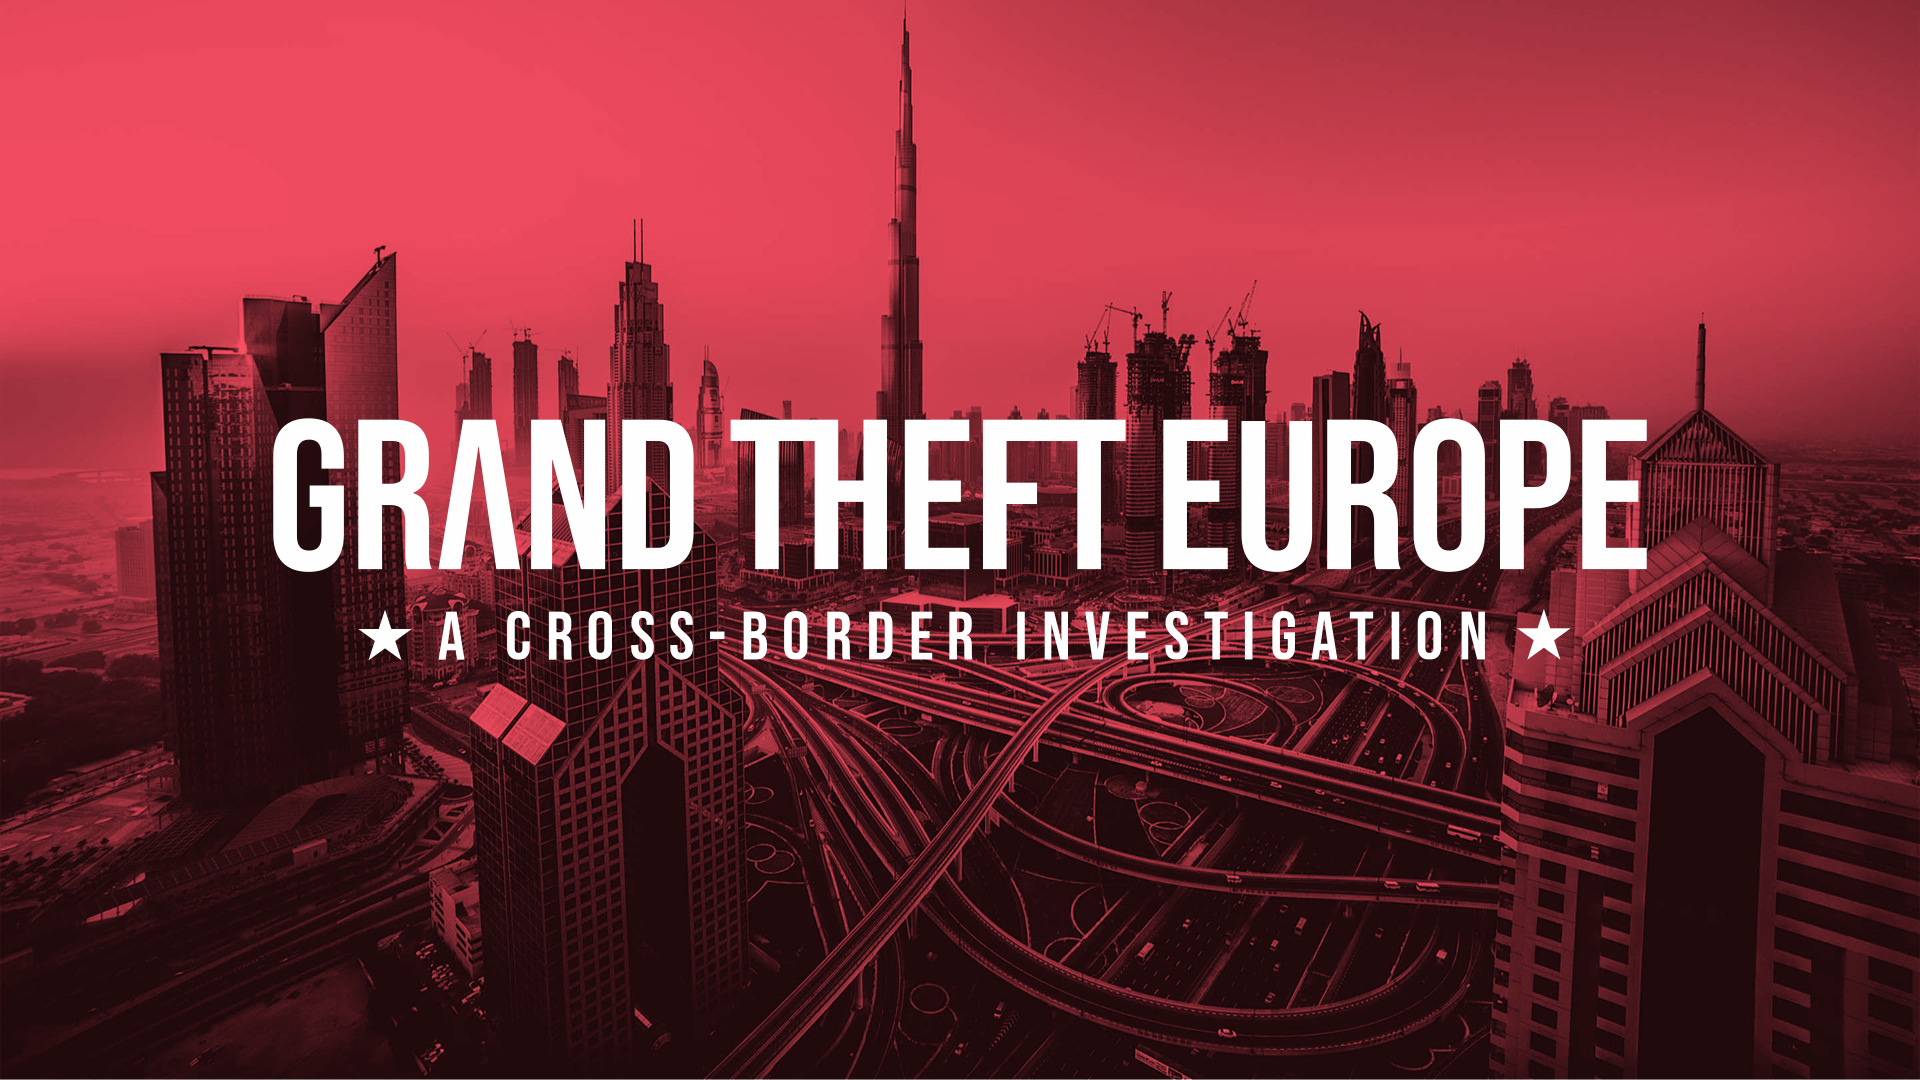 Grand Theft Europe - A cross-border investigation